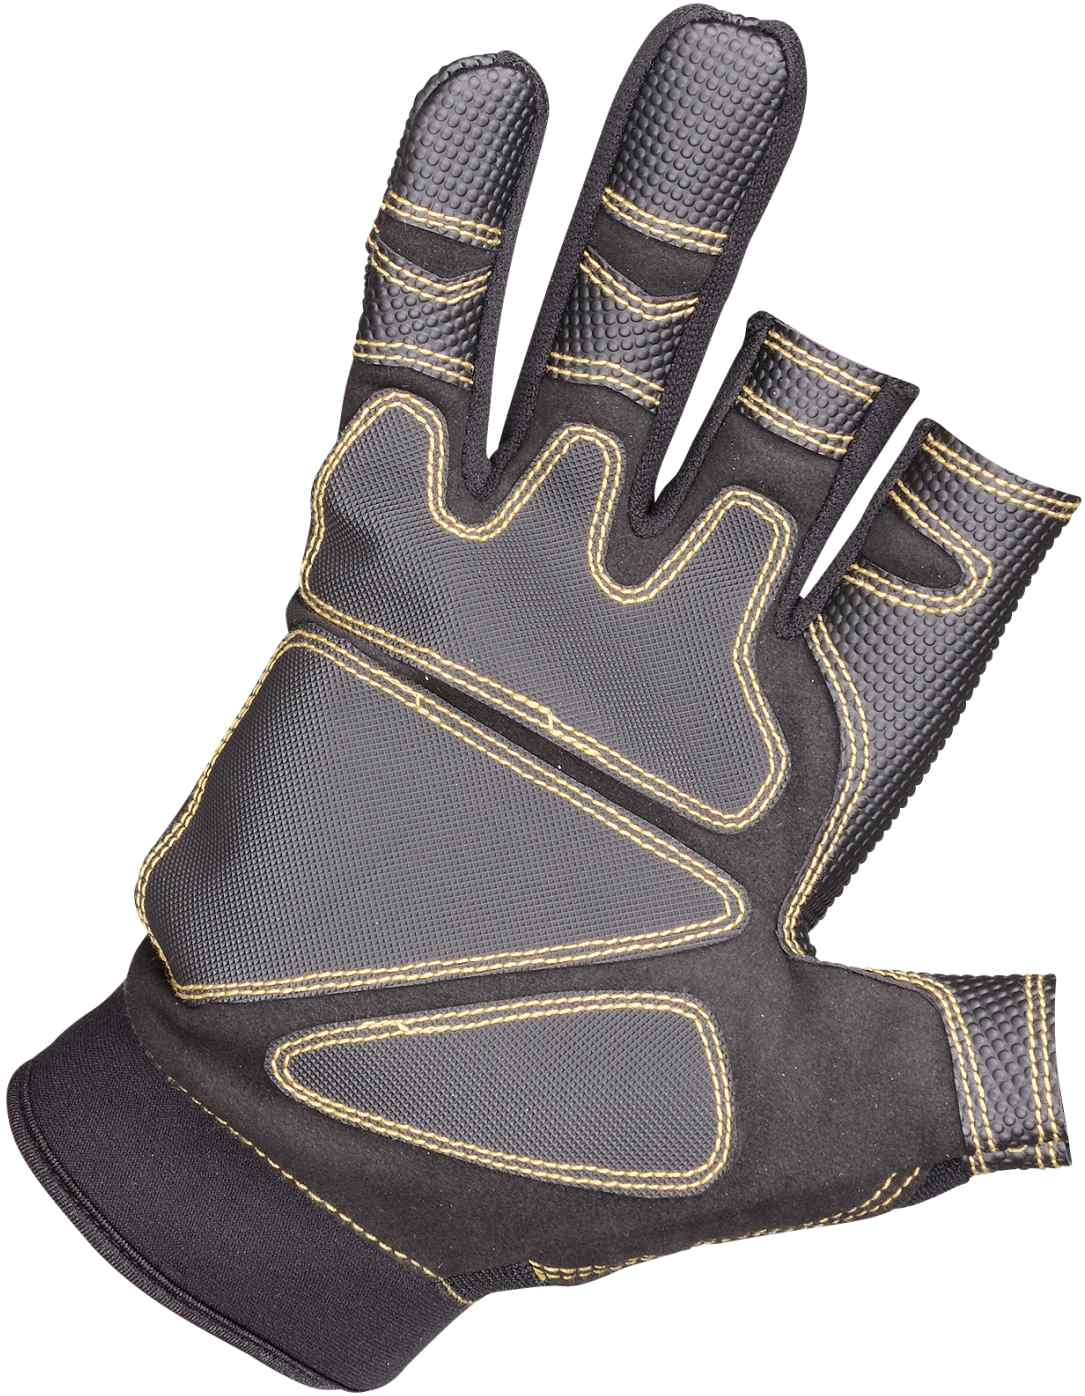 Spro Armor Gloves 3 Finger Cut Fishingtackle24 Angelbedarf